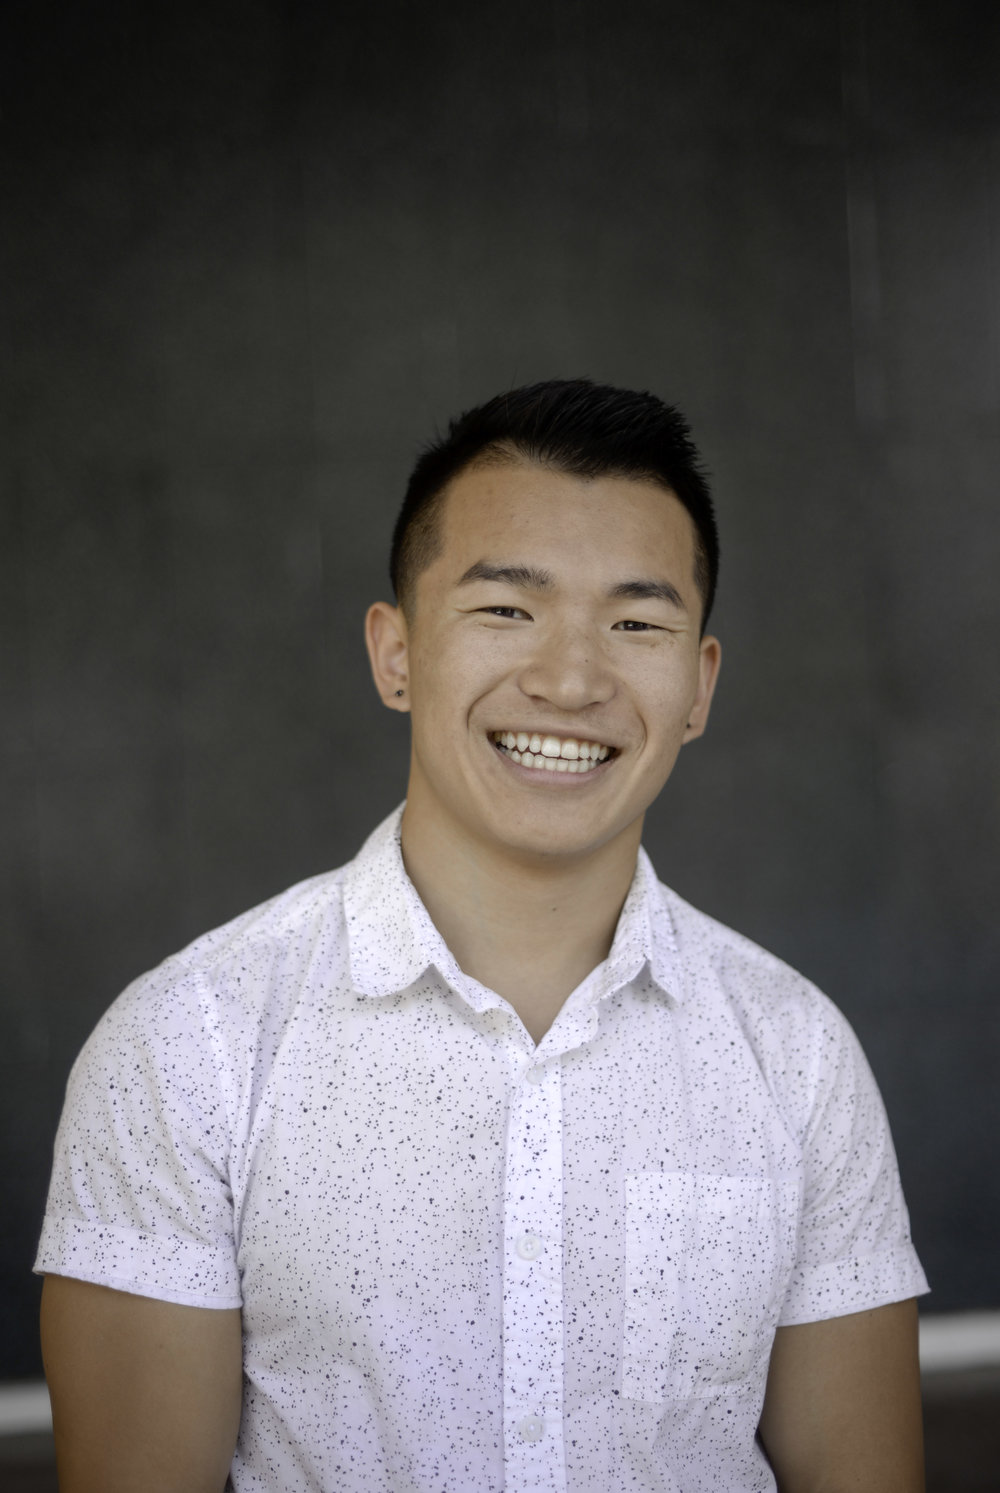 Alvin Lee:Operations Analyst - Alvin is a 5th year at San Jose State University studying Industrial and Systems Engineering. Alvin likes to keep himself busy by being future-oriented. He is also an entrepreneur, a pianist, and a DJ.